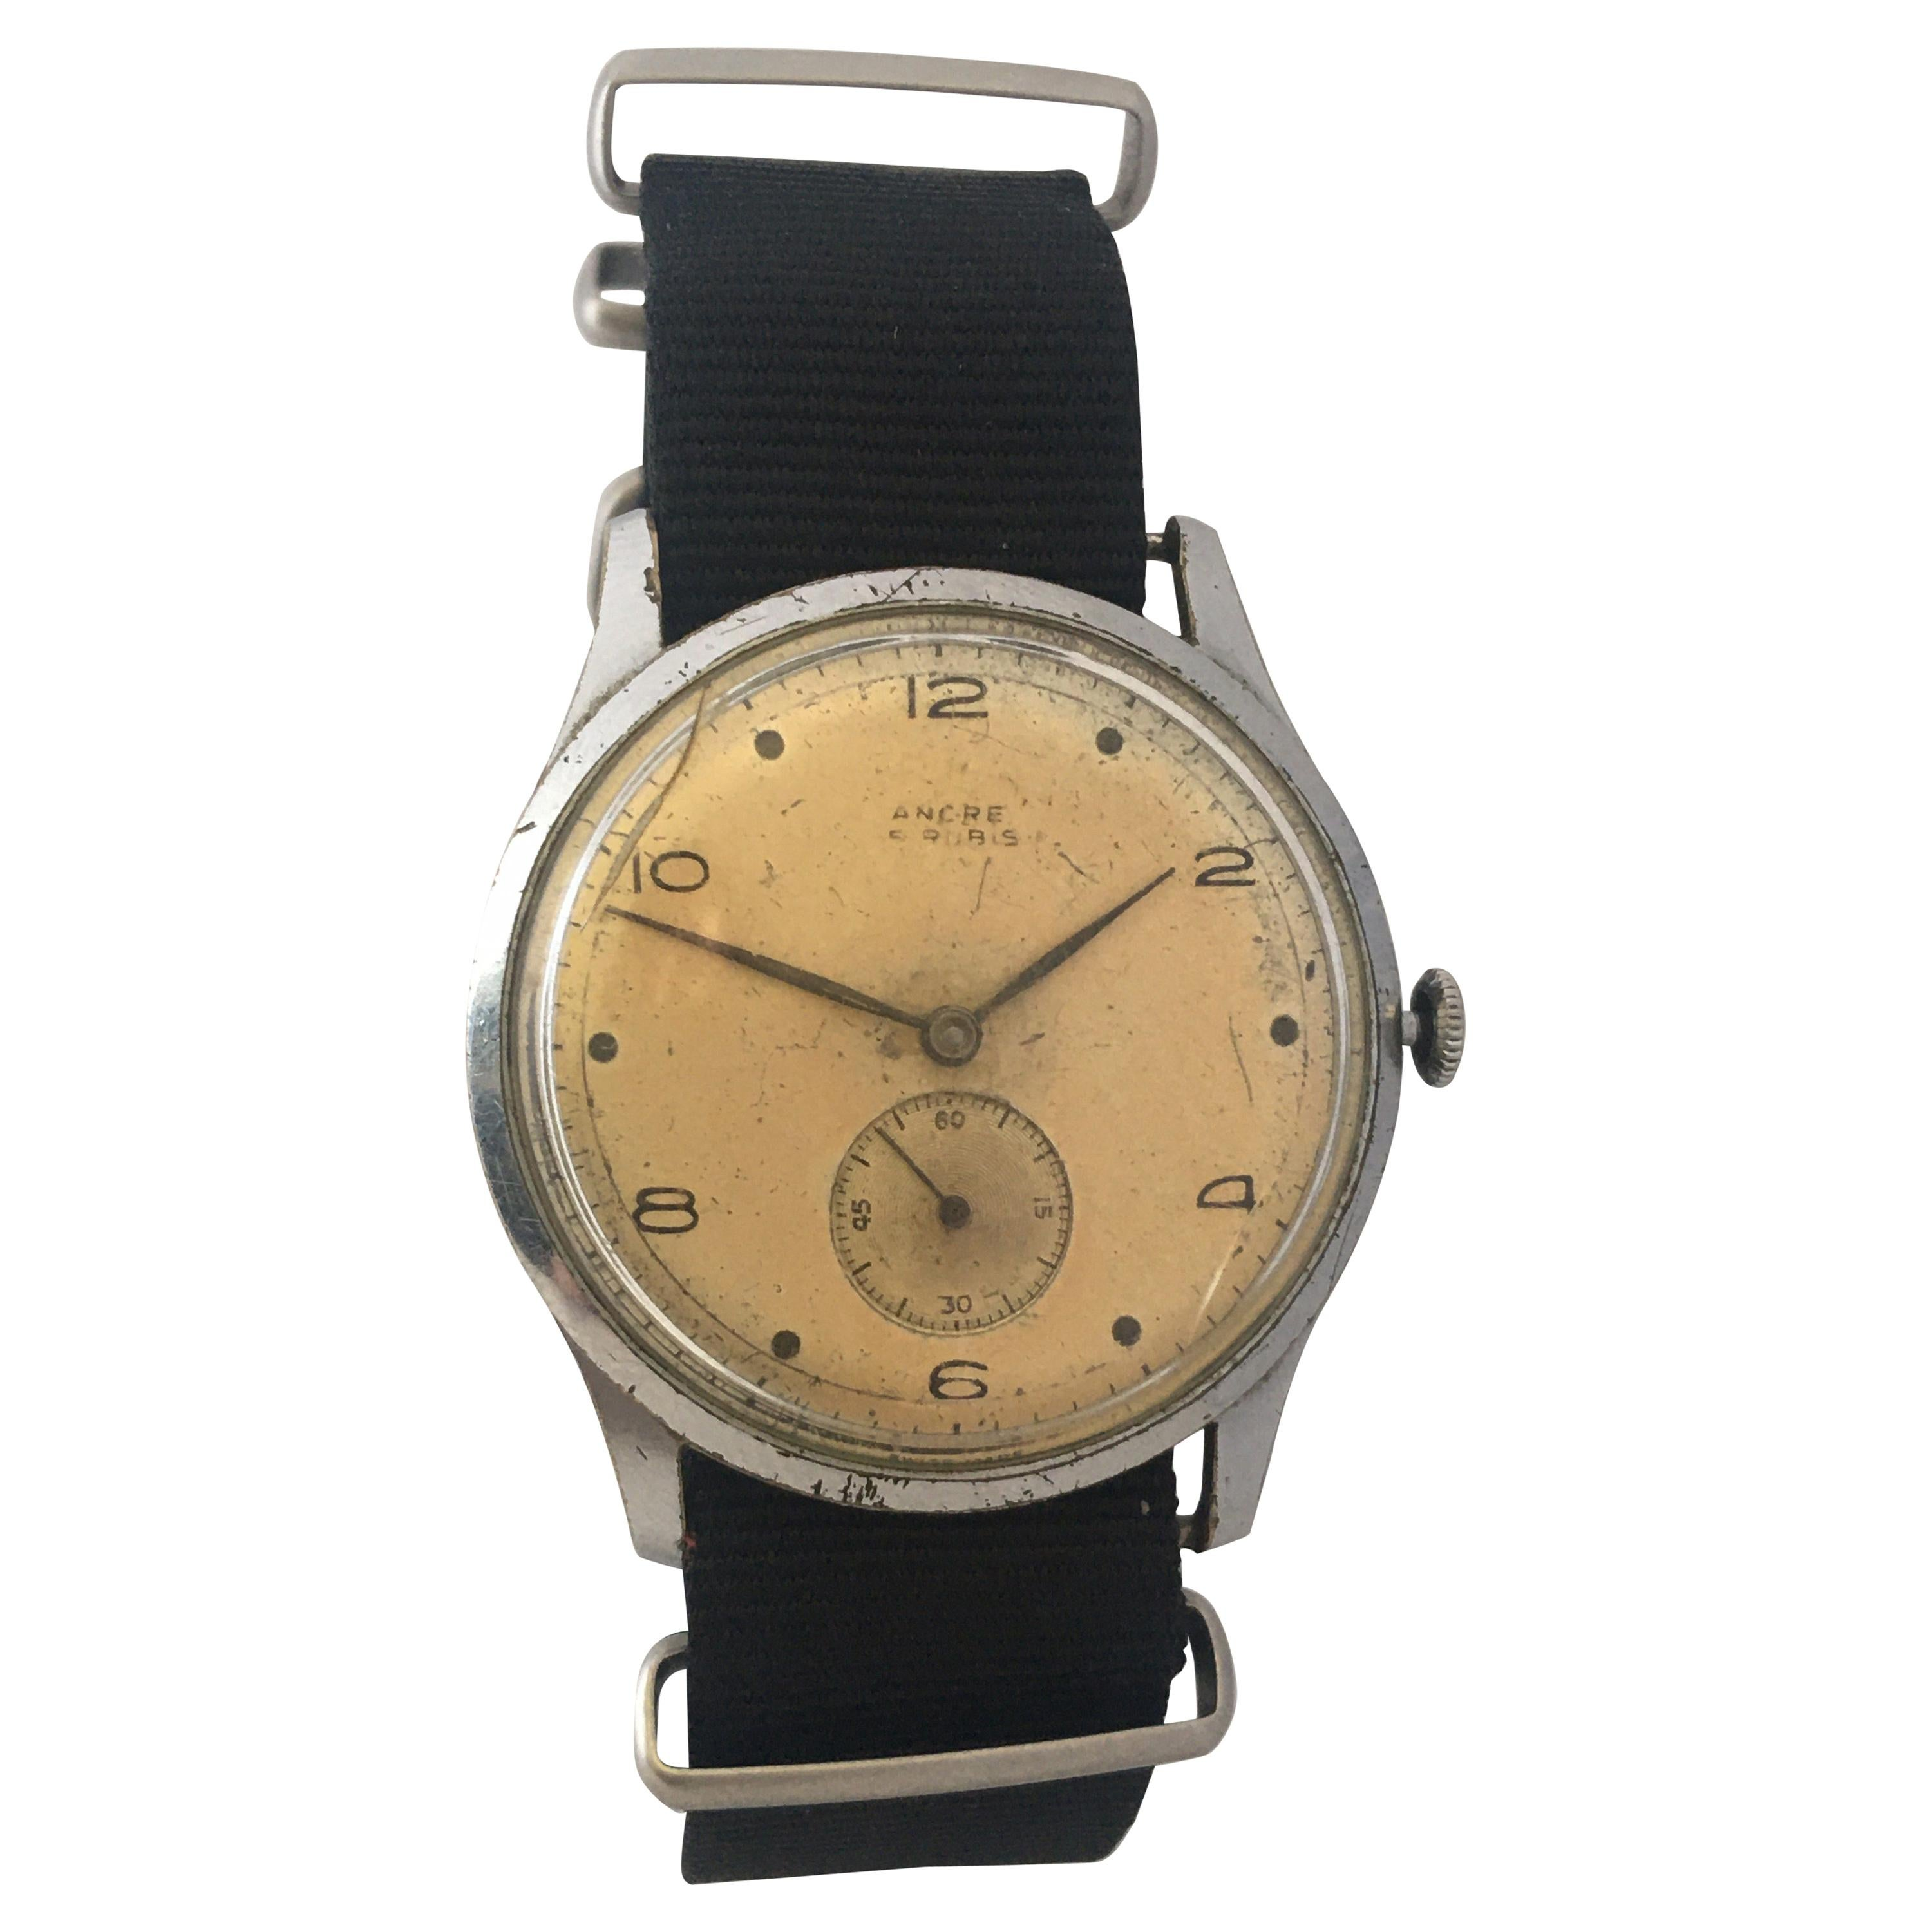 Vintage 1940s ANCRE Mechanical Watch